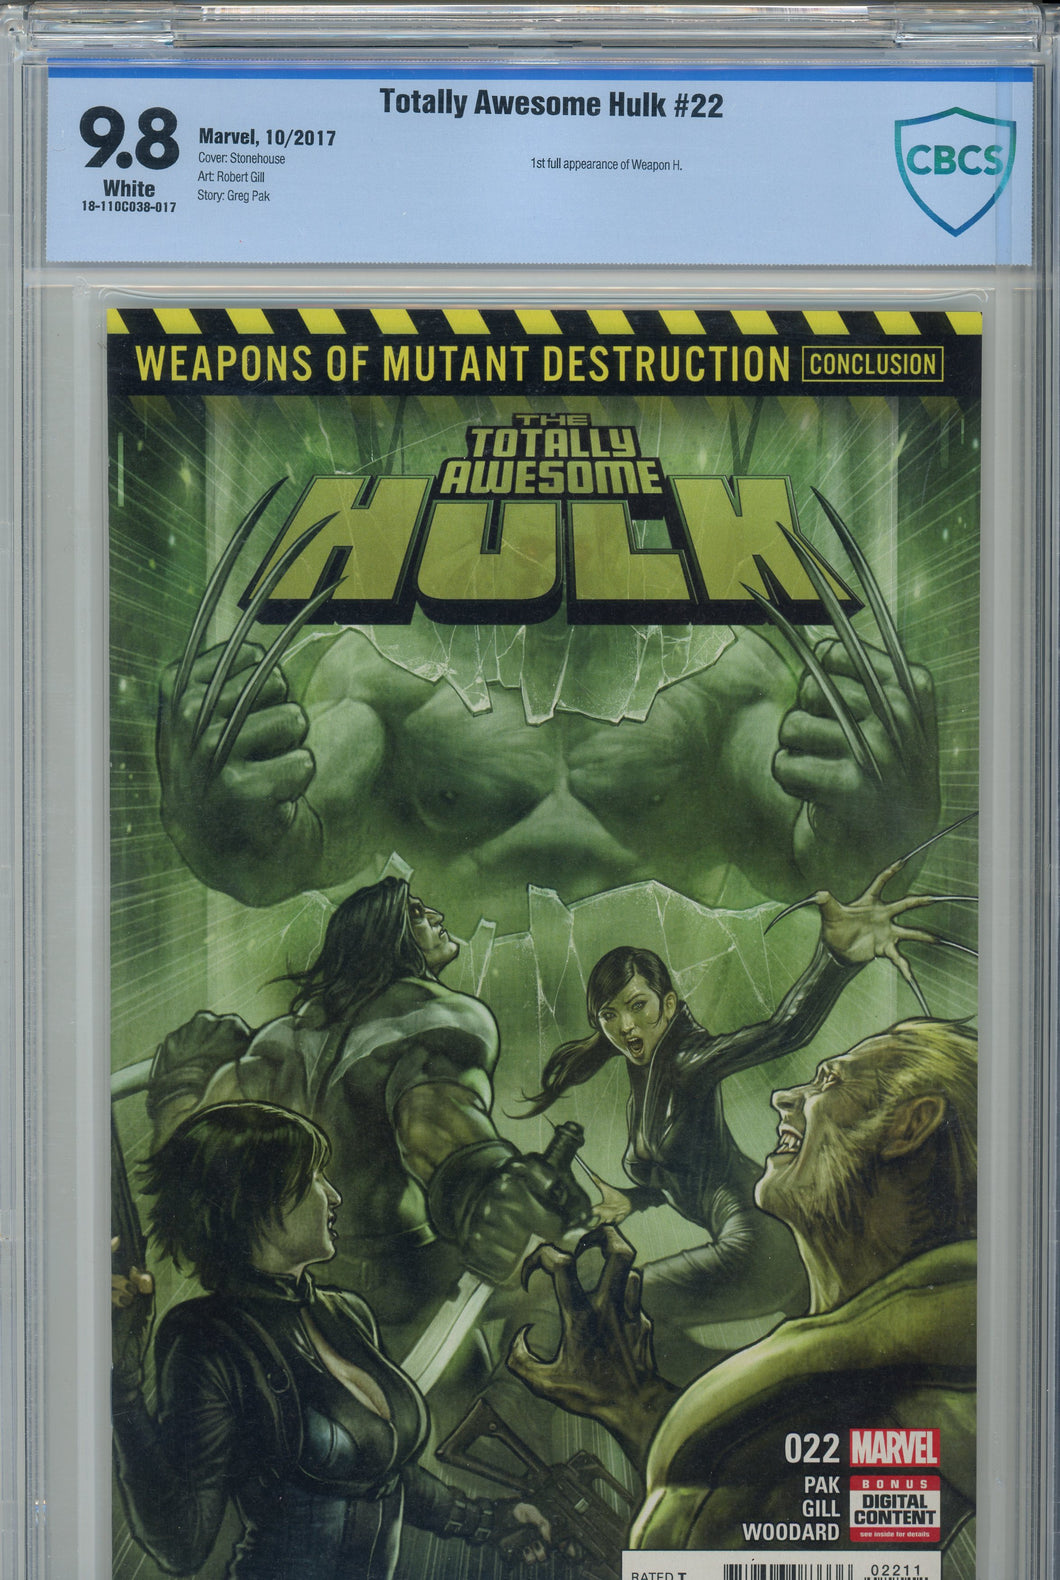 Totally Awesome Hulk #22 CBCS 9.8 1st Appearance of Weapon H